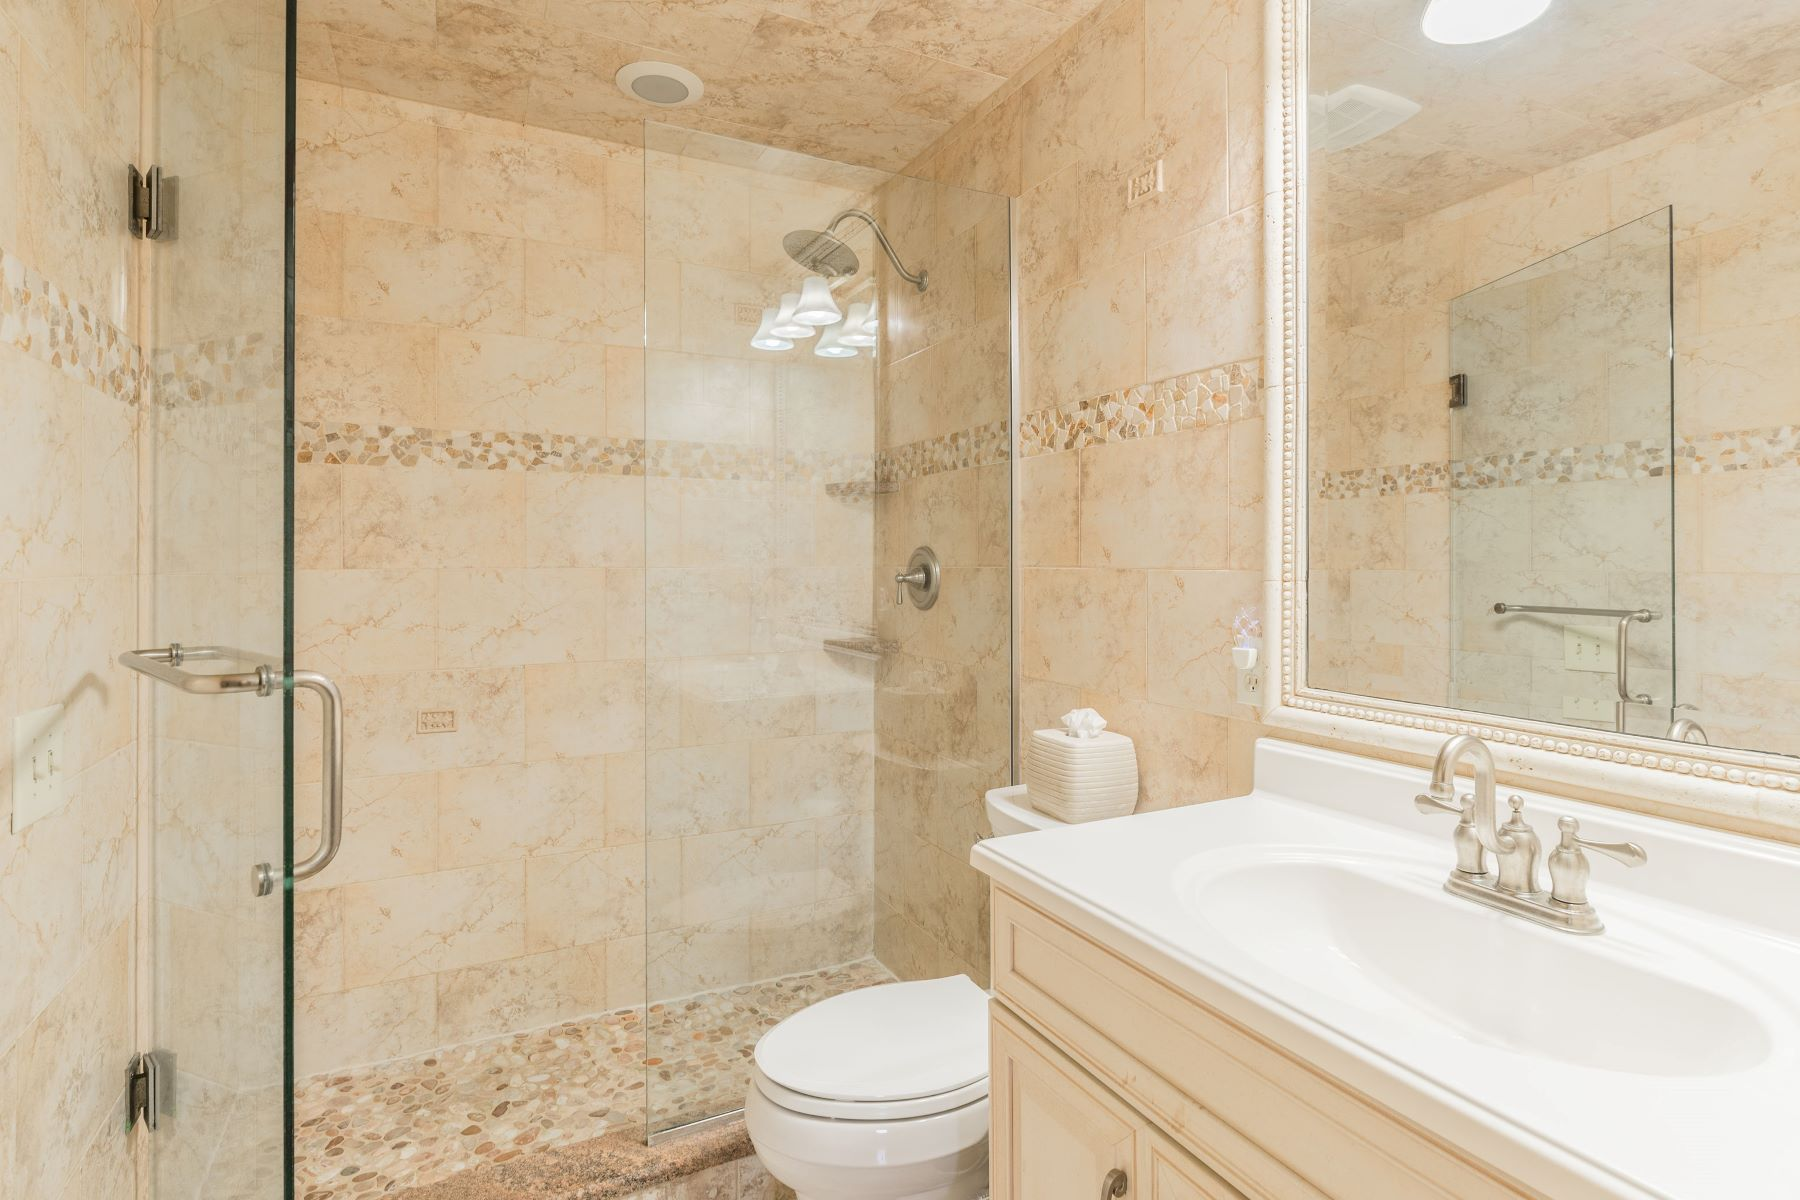 Additional photo for property listing at 505 S. River Oaks Drive Indialantic, Florida 32903 United States